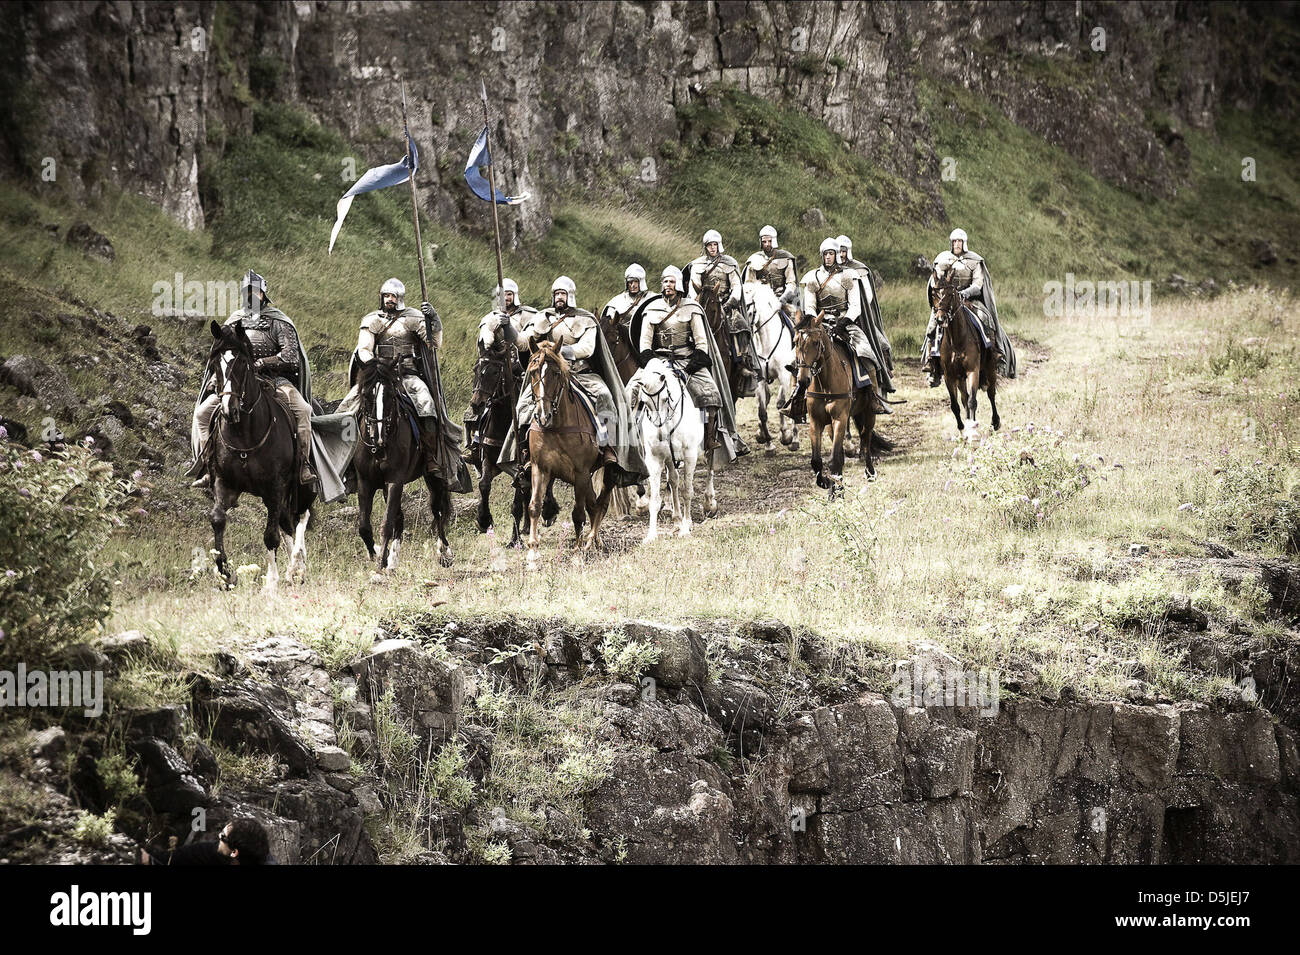 RIDERS GAME OF THRONES (2011) - Stock Image